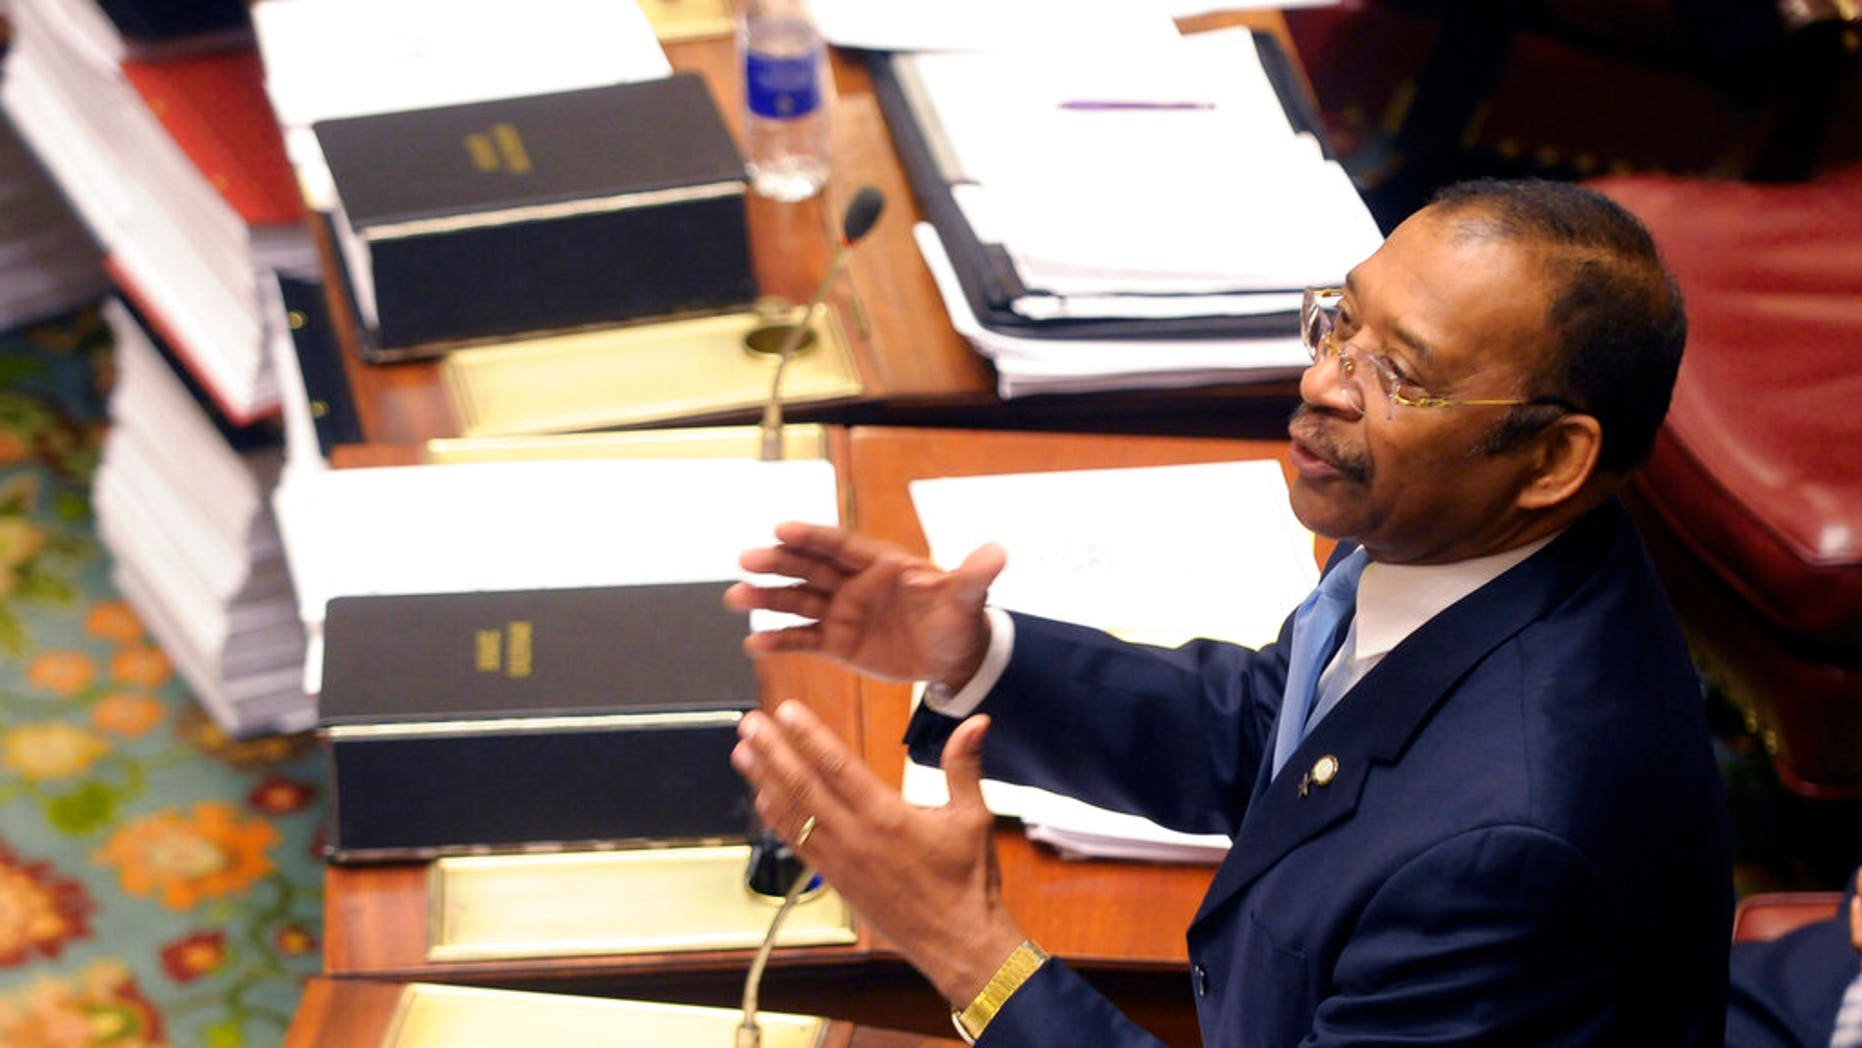 FILE: Sen. Ruben Diaz, Sr. , D-Soundview, speaks during a session of the New York state Senate at the Capitol in Albany, N.Y.